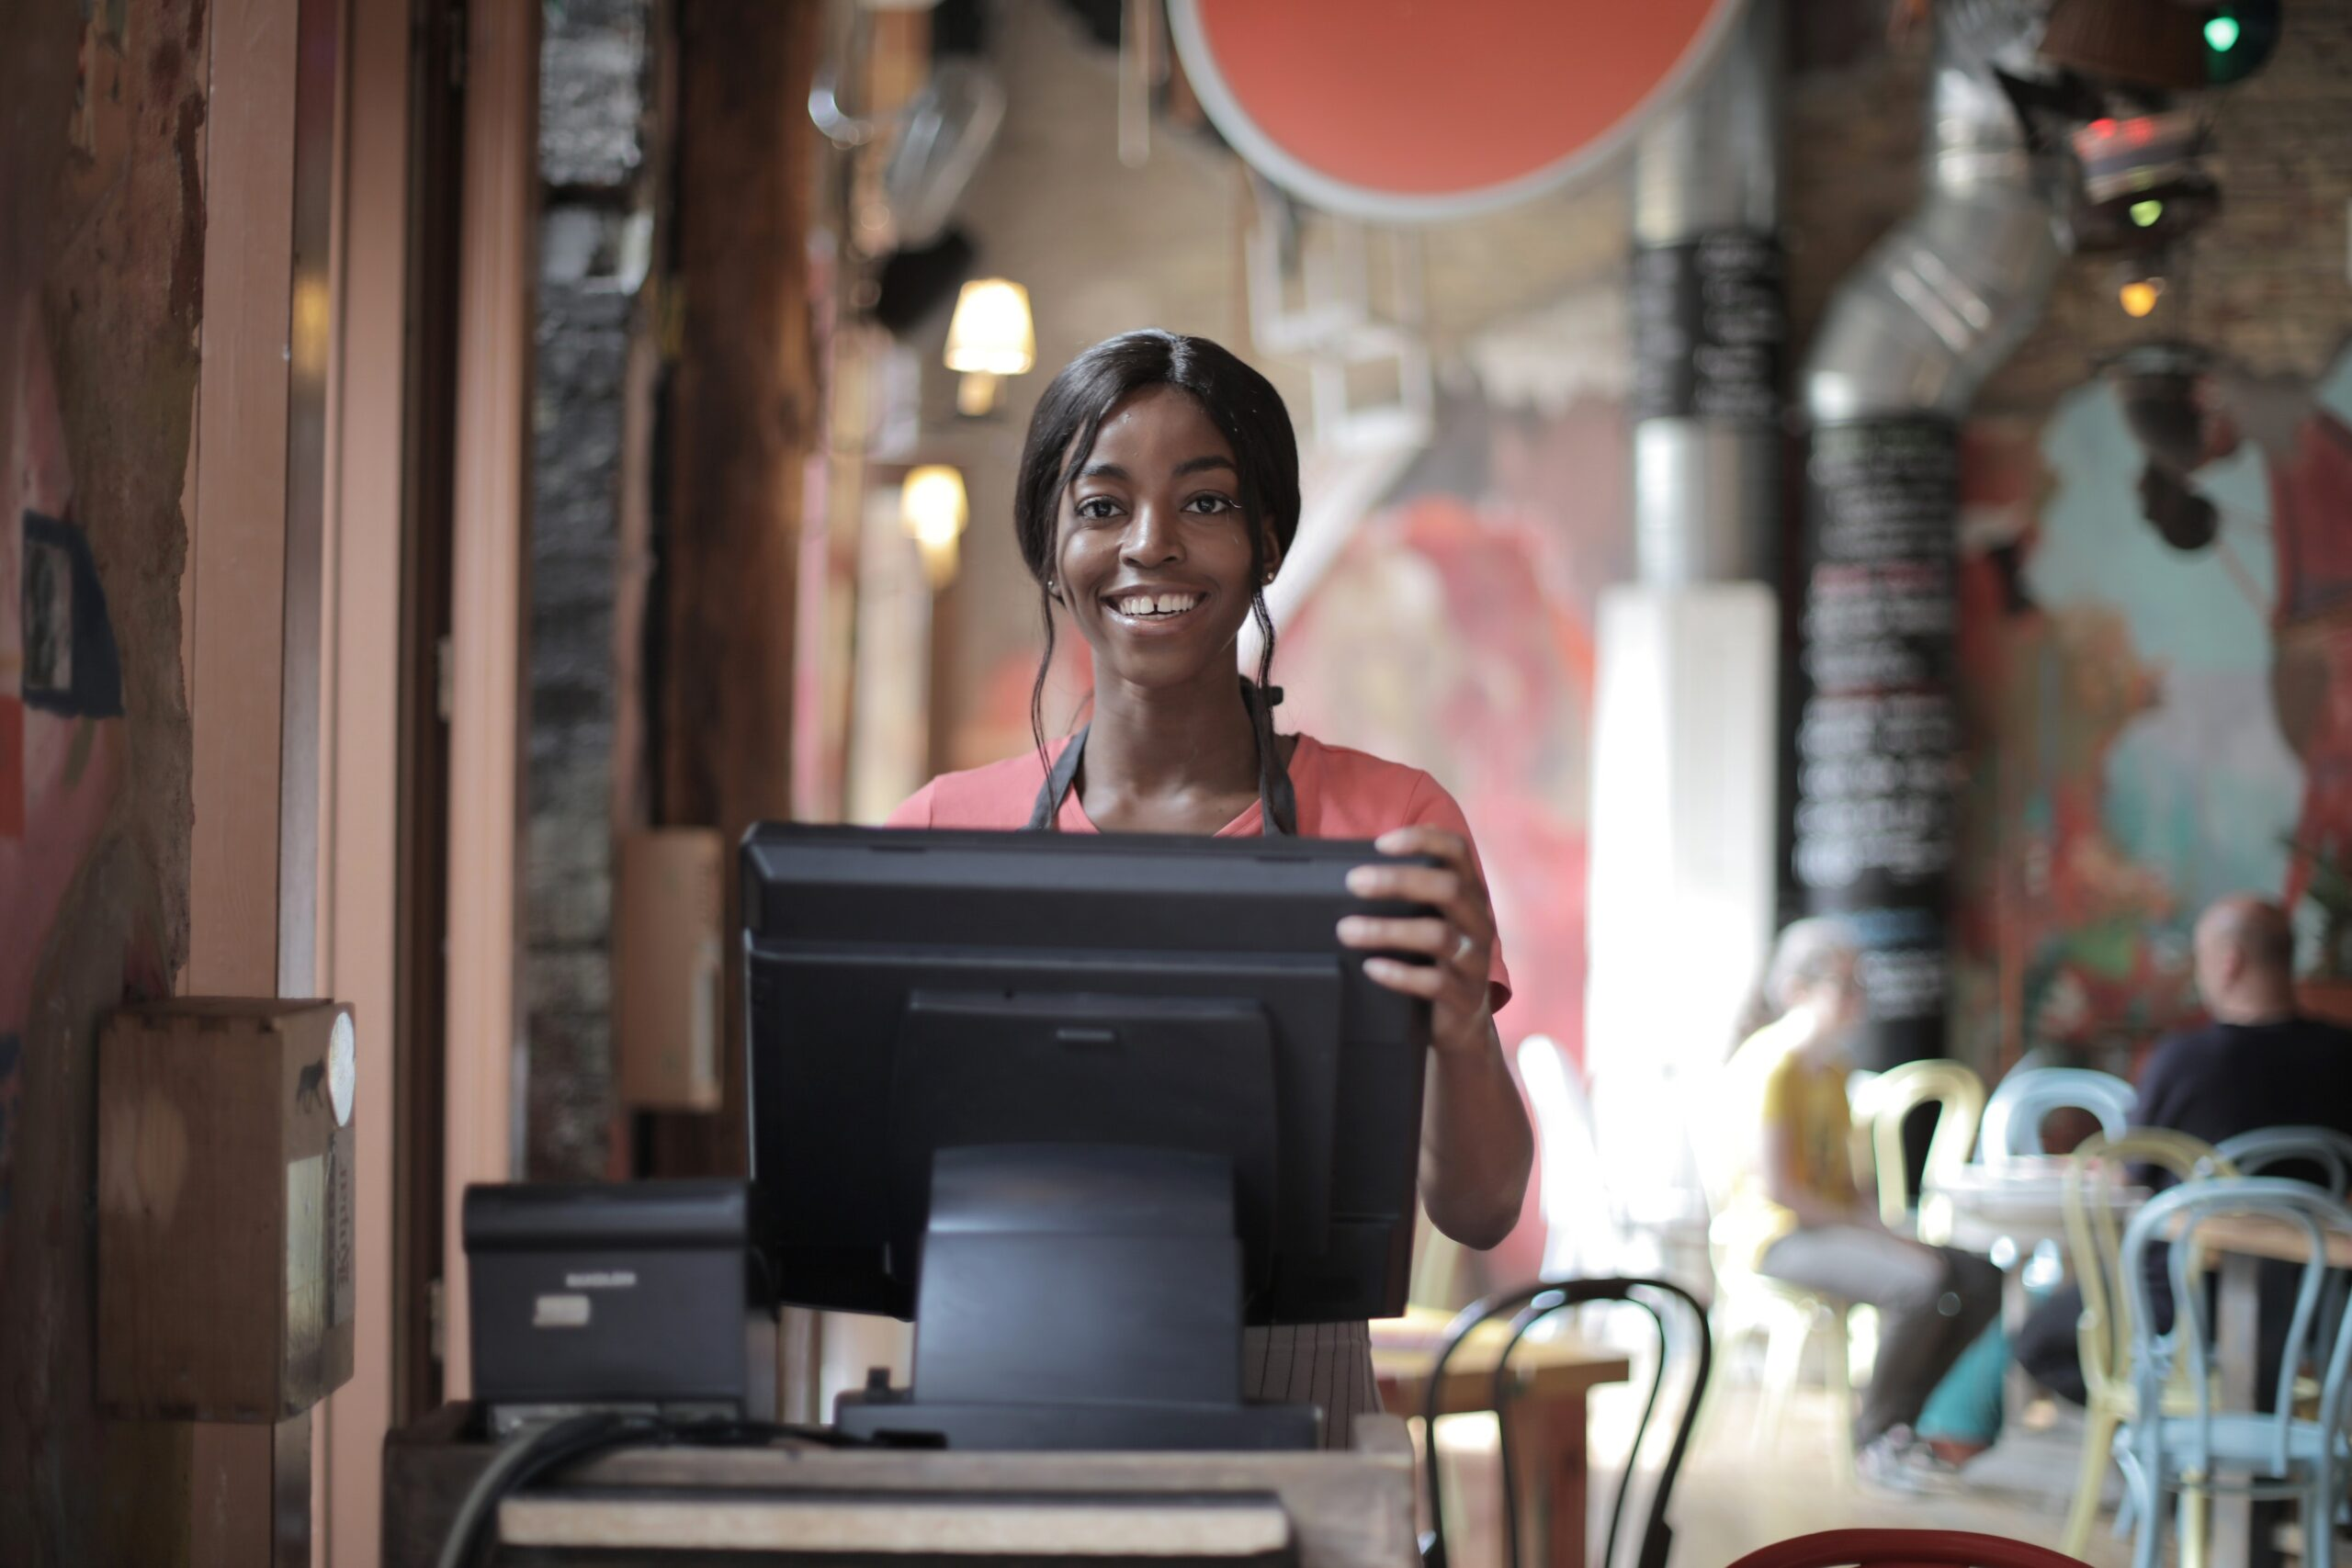 Cheerful black waitress standing at counter 3801426 scaled